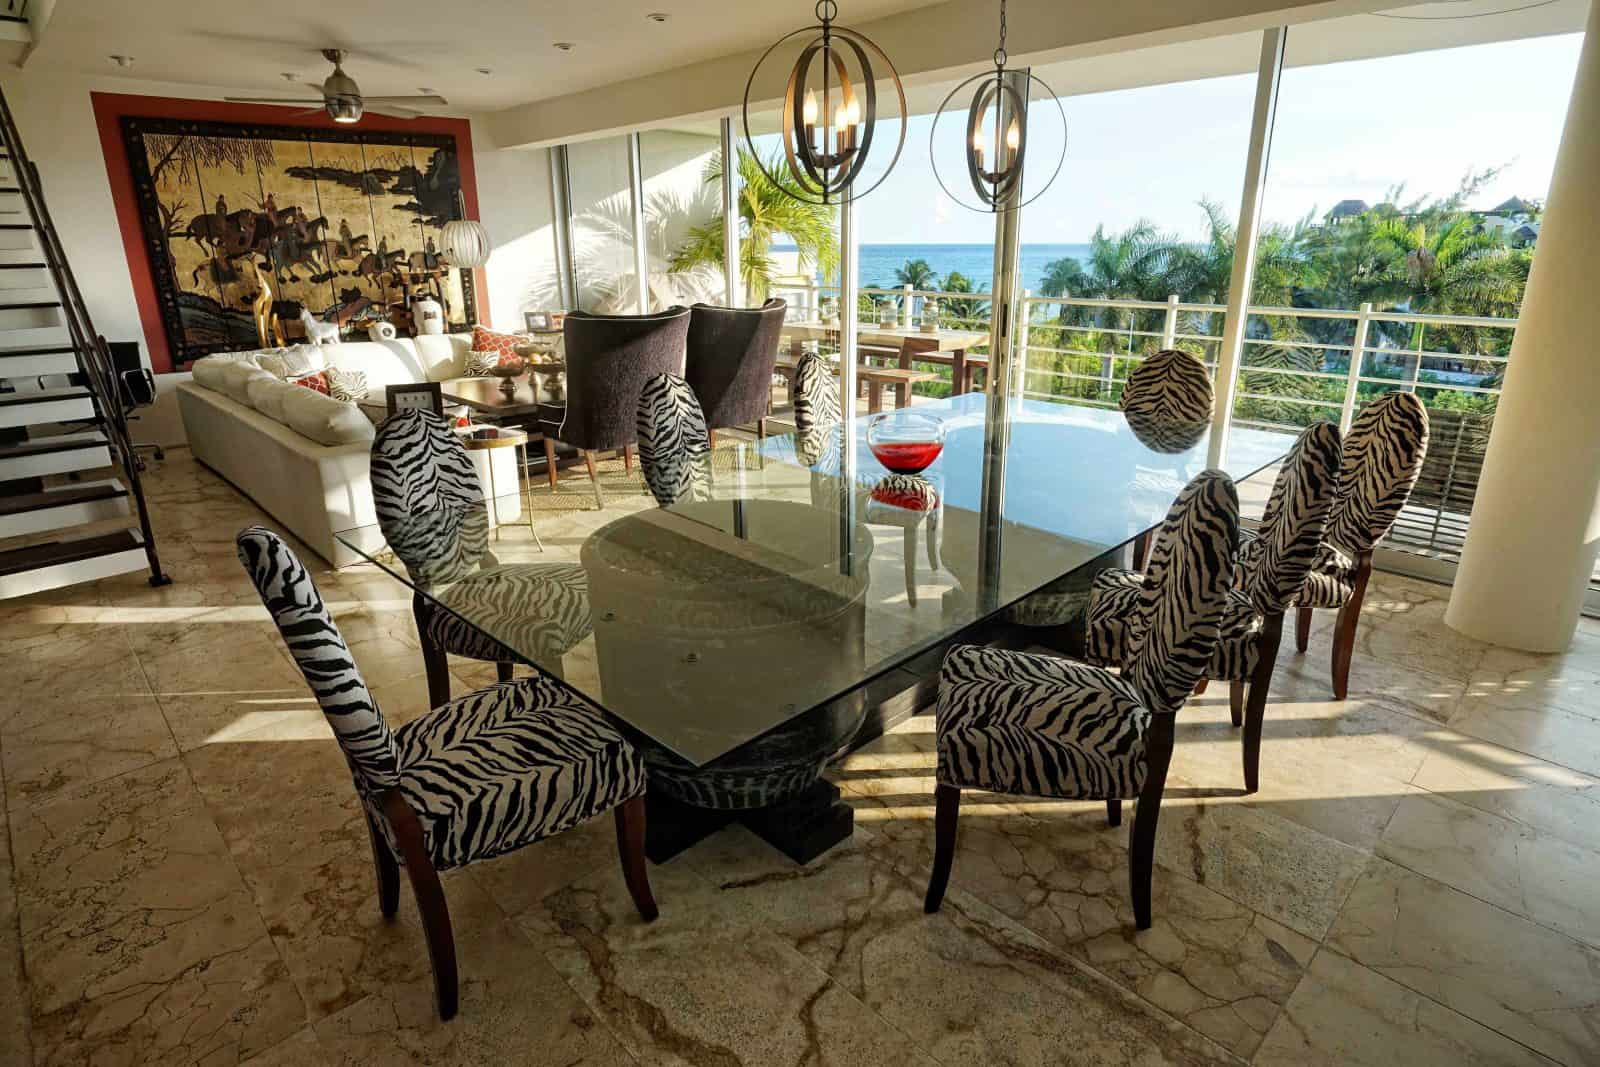 Magia penthouse dining with a spectacular view